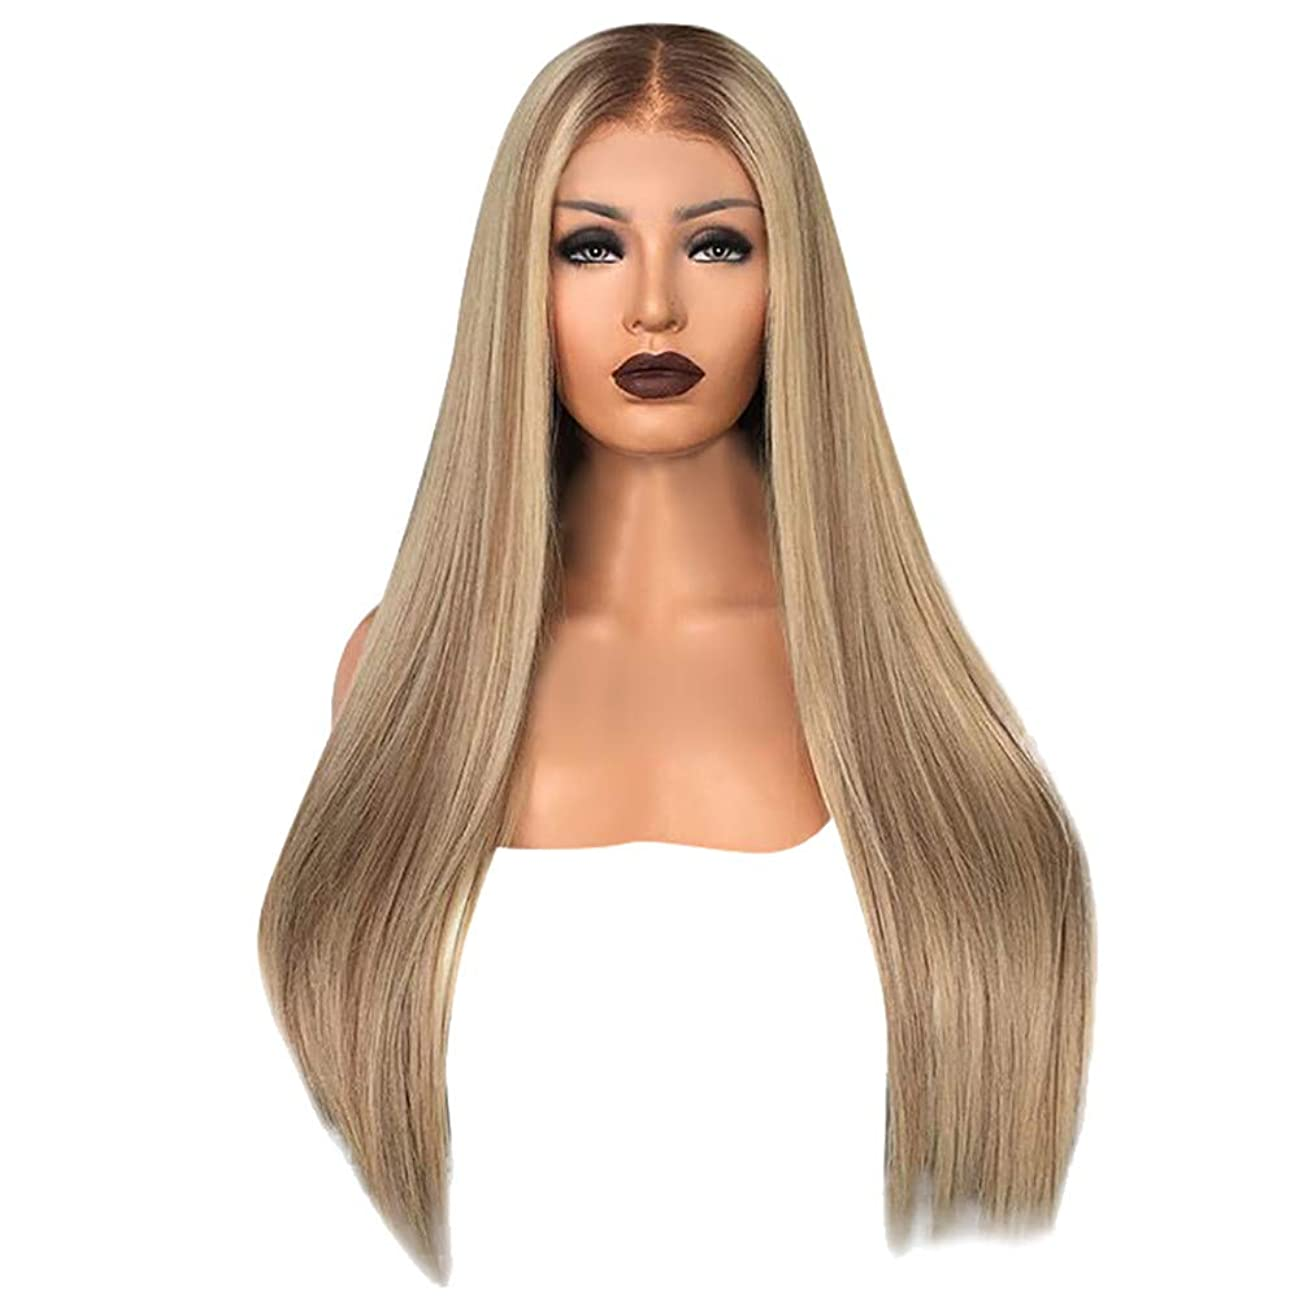 Hair Wigs, pollyhb Fashion Blonde Glueless Lace Front Wigs Long Natural Straight Heat Resistant Synthetic Hair Replacement Wig for Women